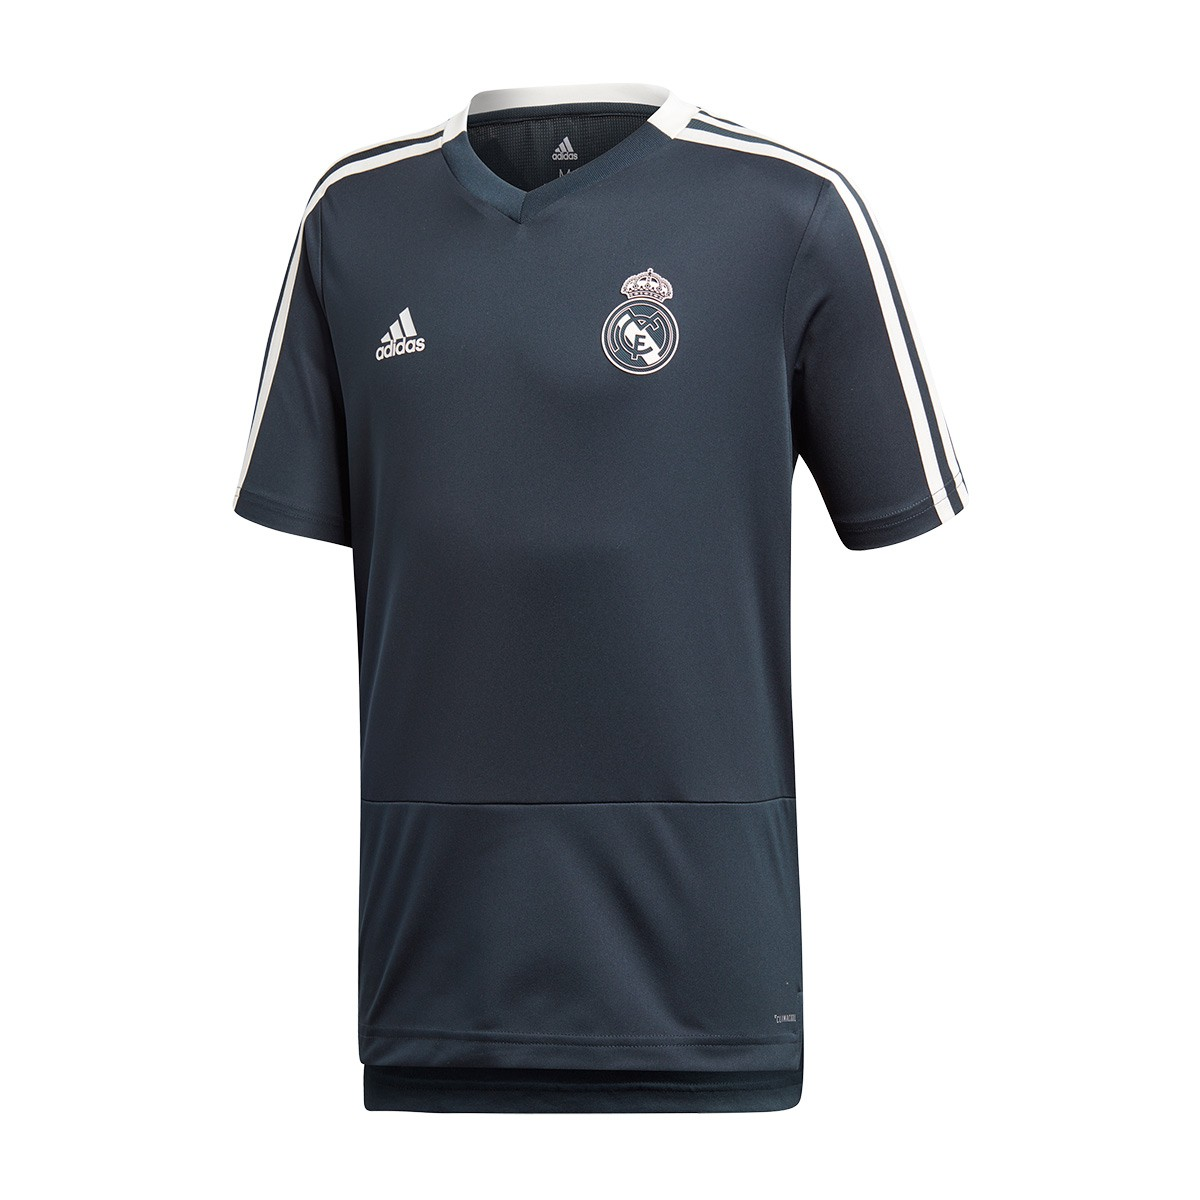 10d89745a10f8 Camiseta adidas Real Madrid Training 2018-2019 Niño Tech onix-Core white -  Tienda de fútbol Fútbol Emotion